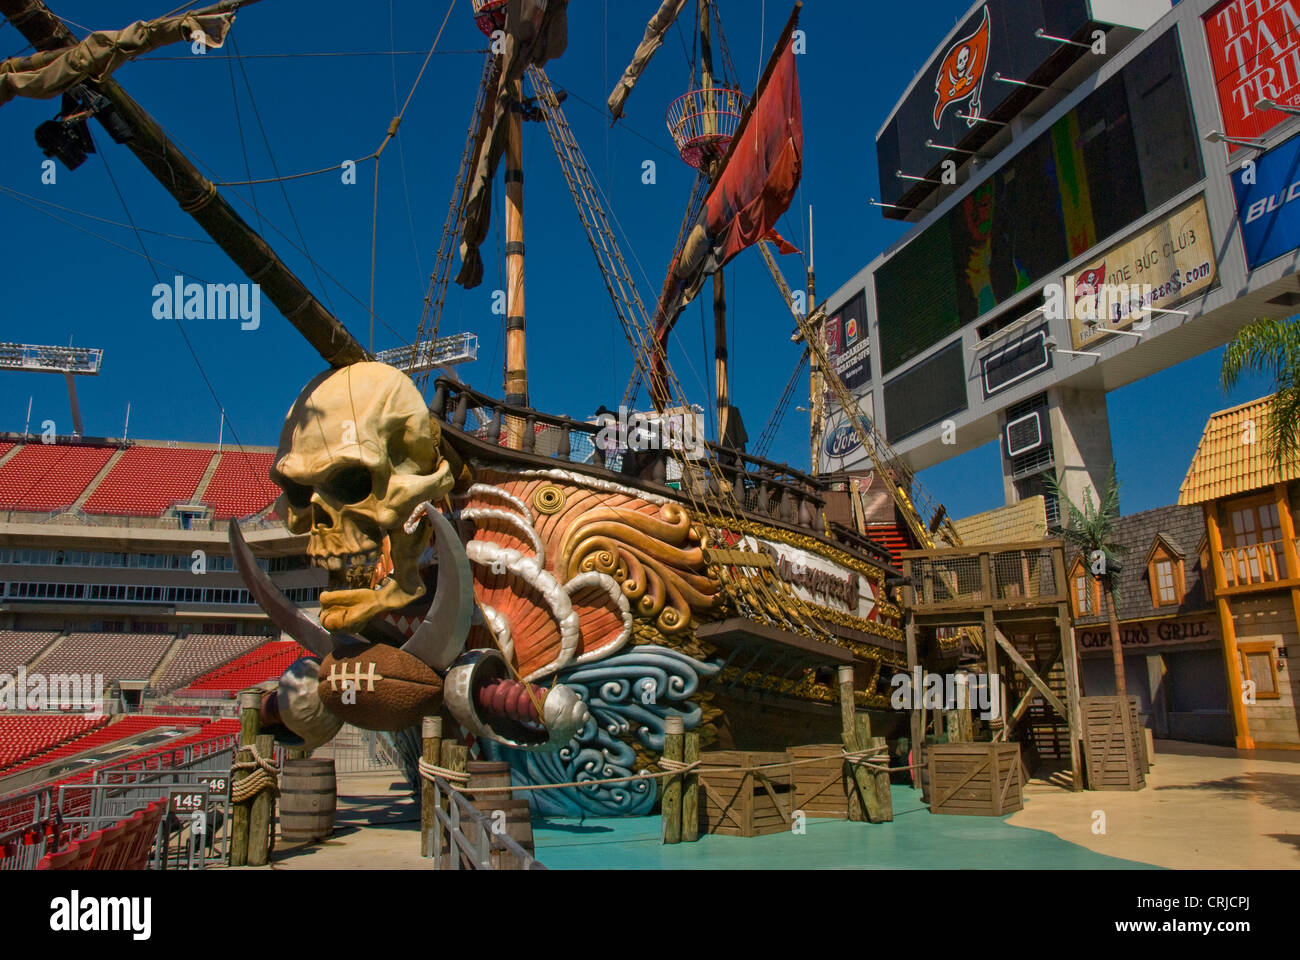 skull on ship at the raymond james football stadium in tampa florida stock photo alamy https www alamy com stock photo skull on ship at the raymond james football stadium in tampa florida 48963002 html